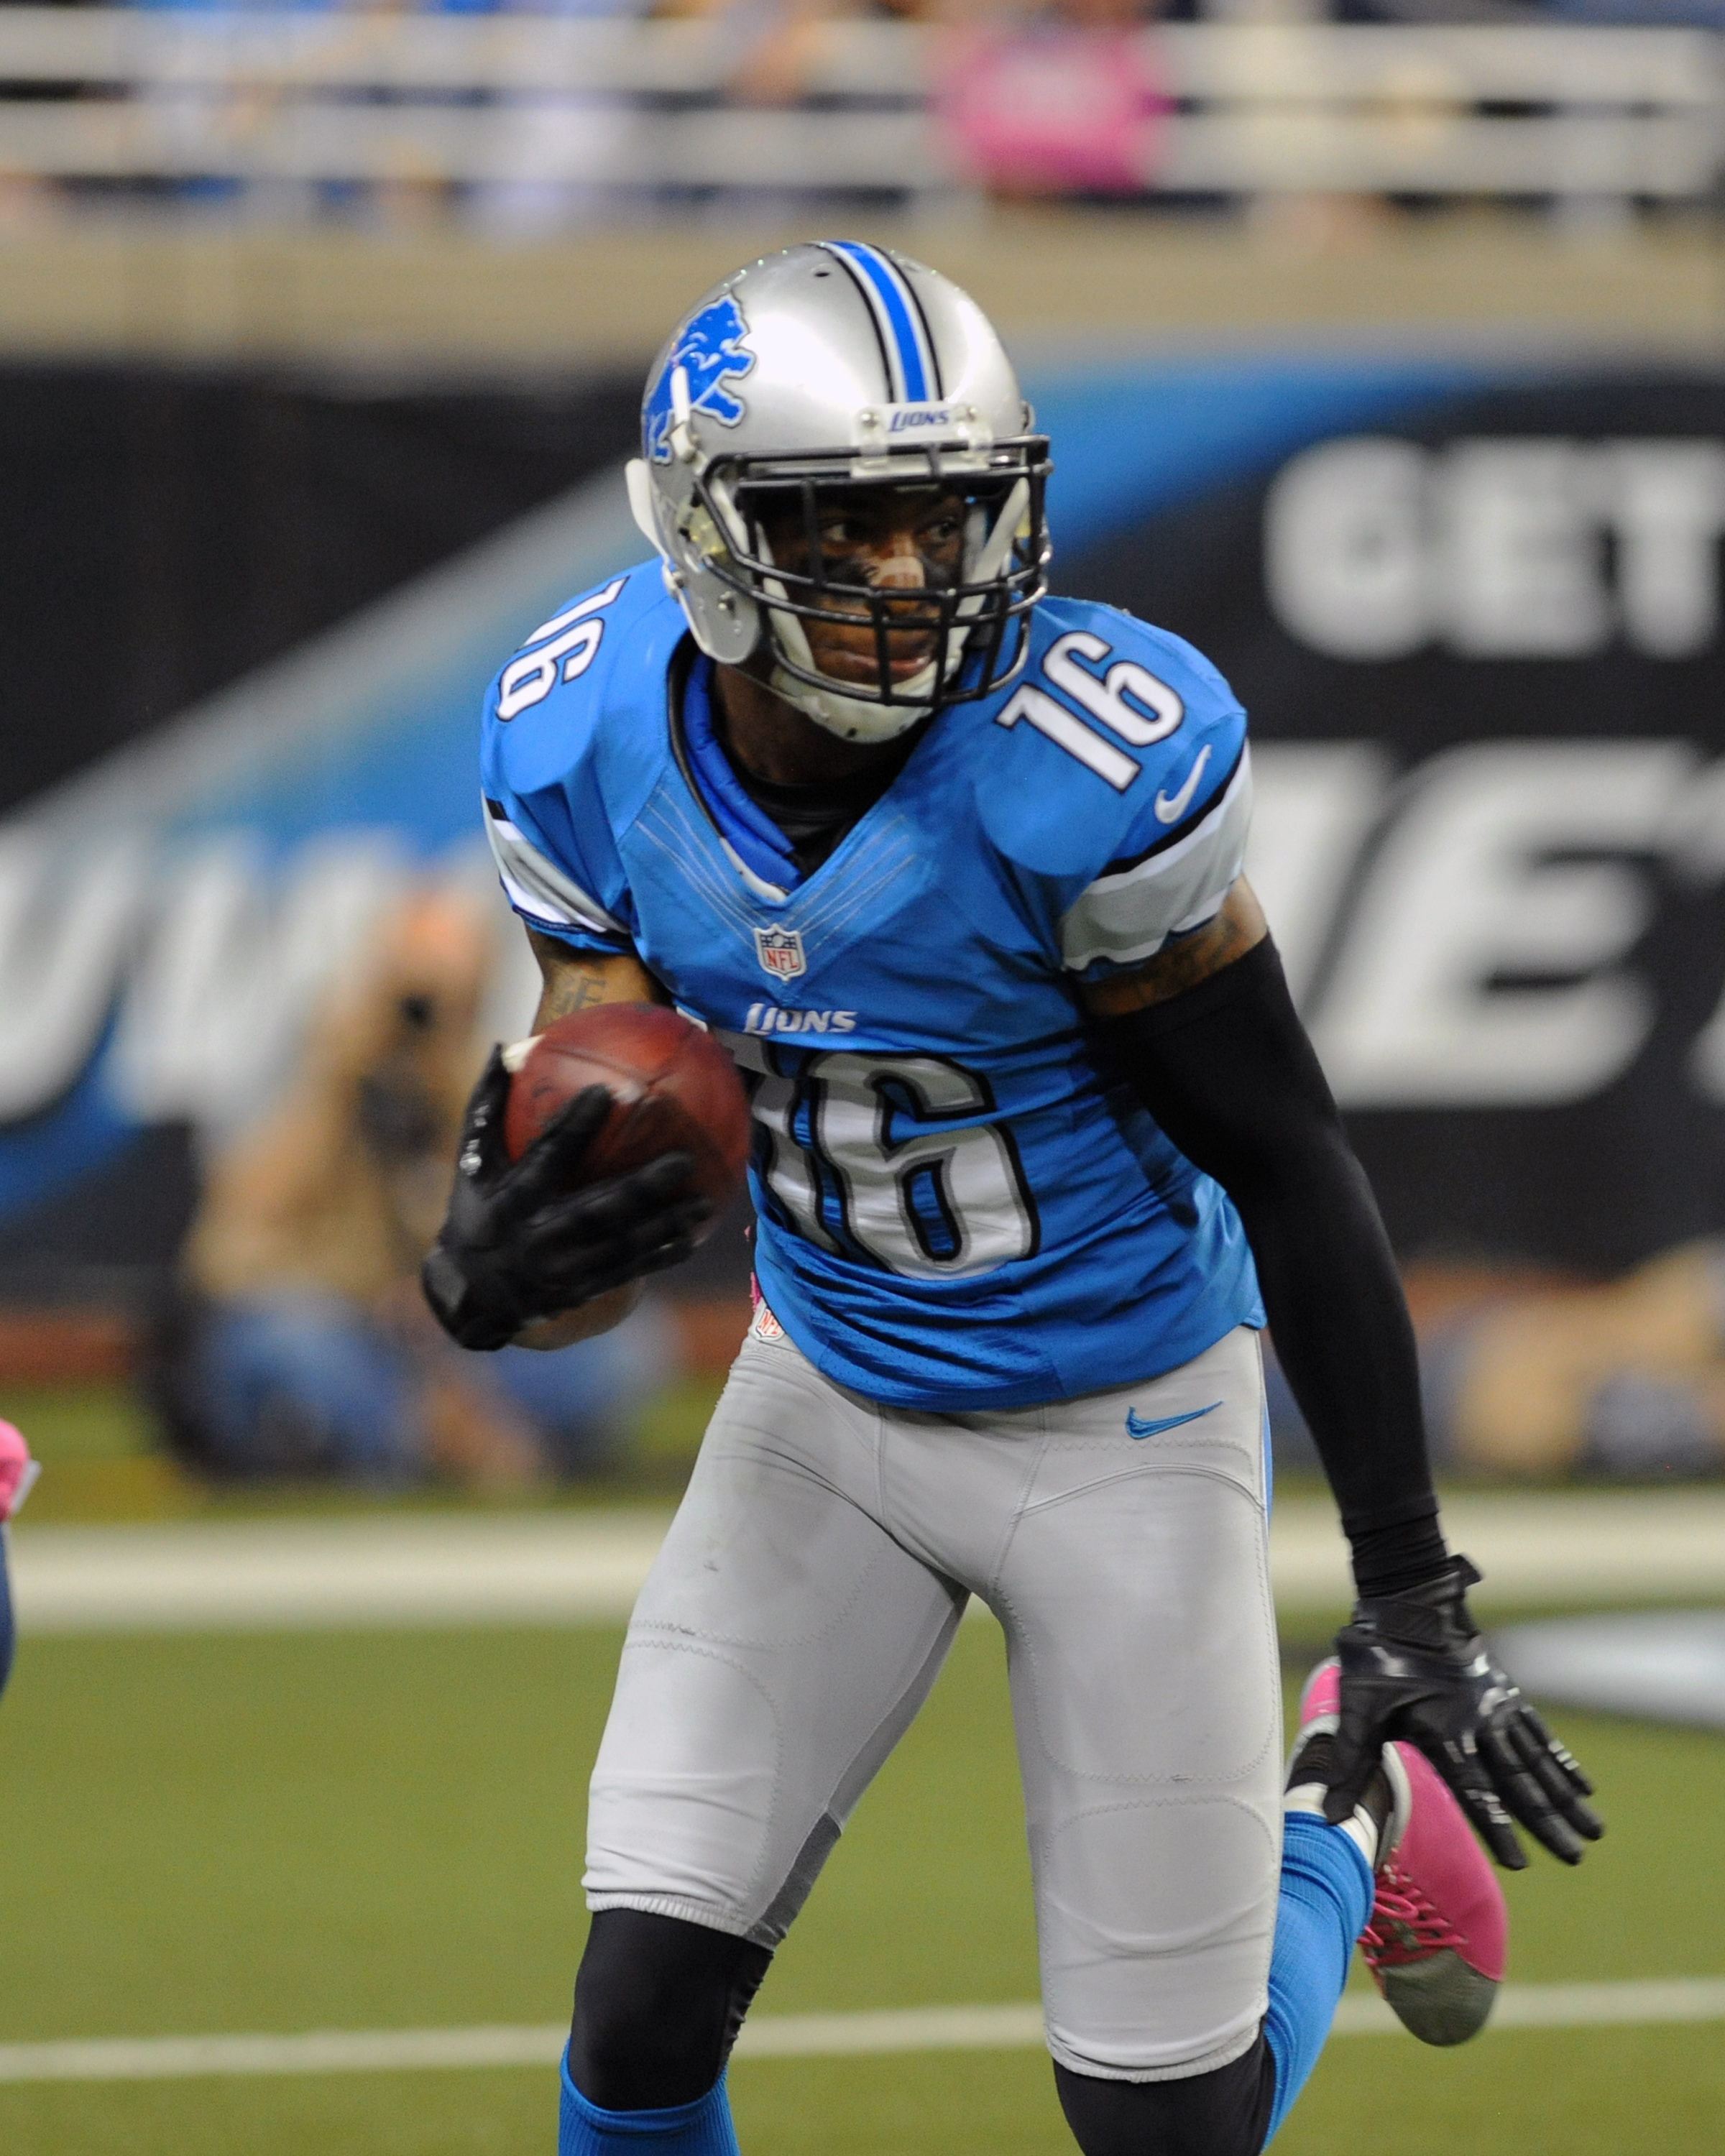 new arrival bff22 1bfed Lions' Titus Young Sent Home, Will Be Inactive Thanksgiving ...